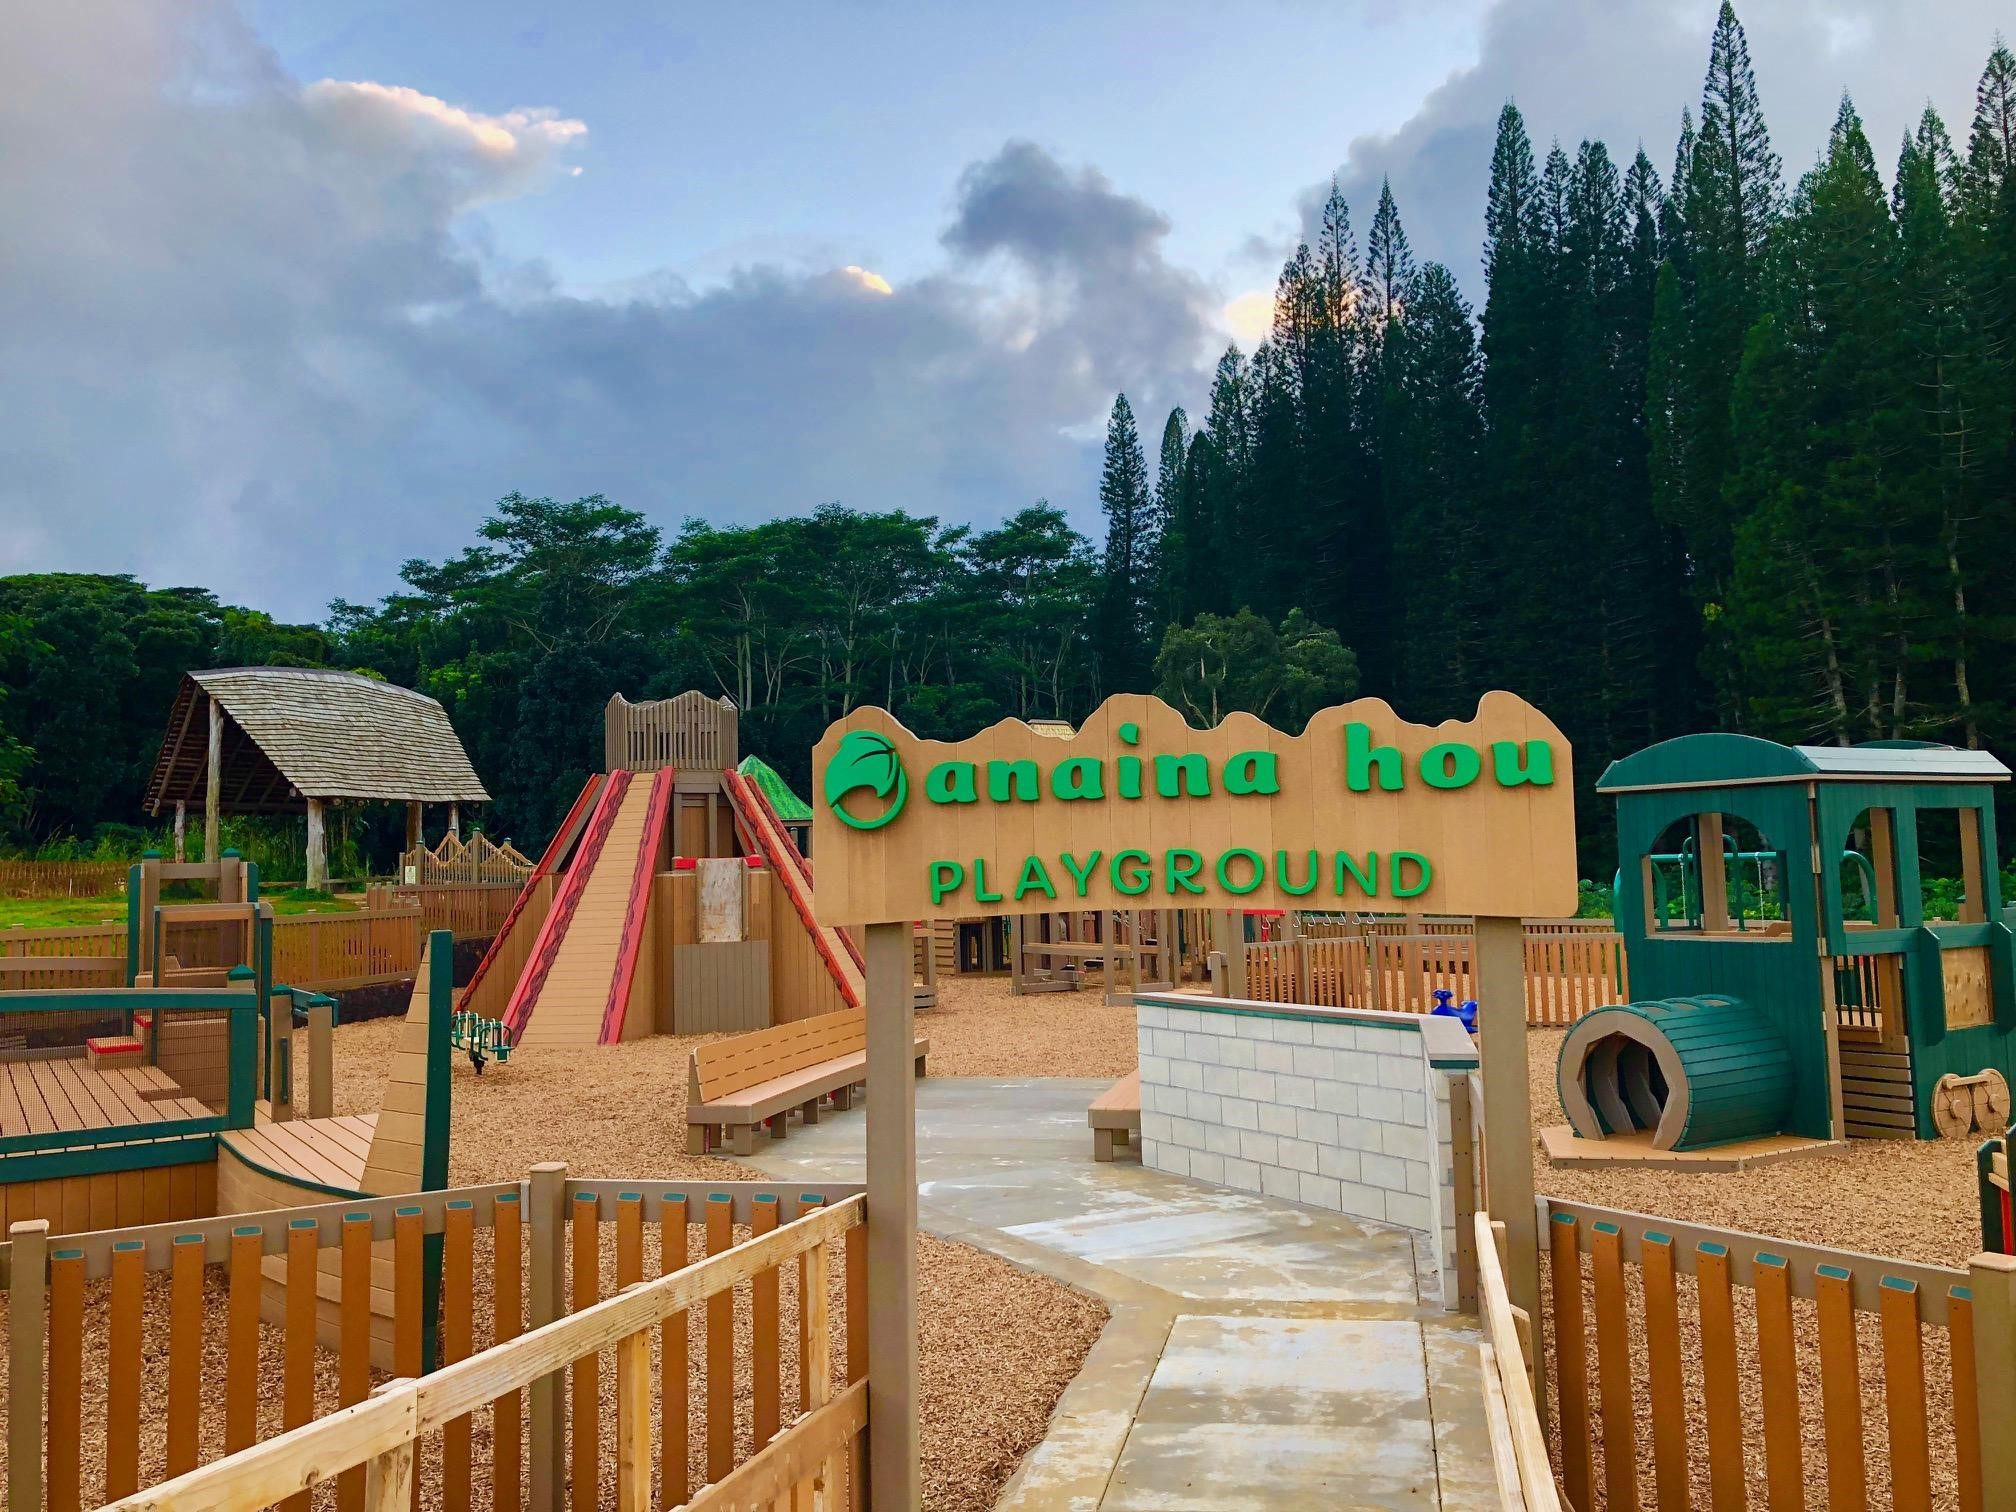 The new playground recycled plastic built